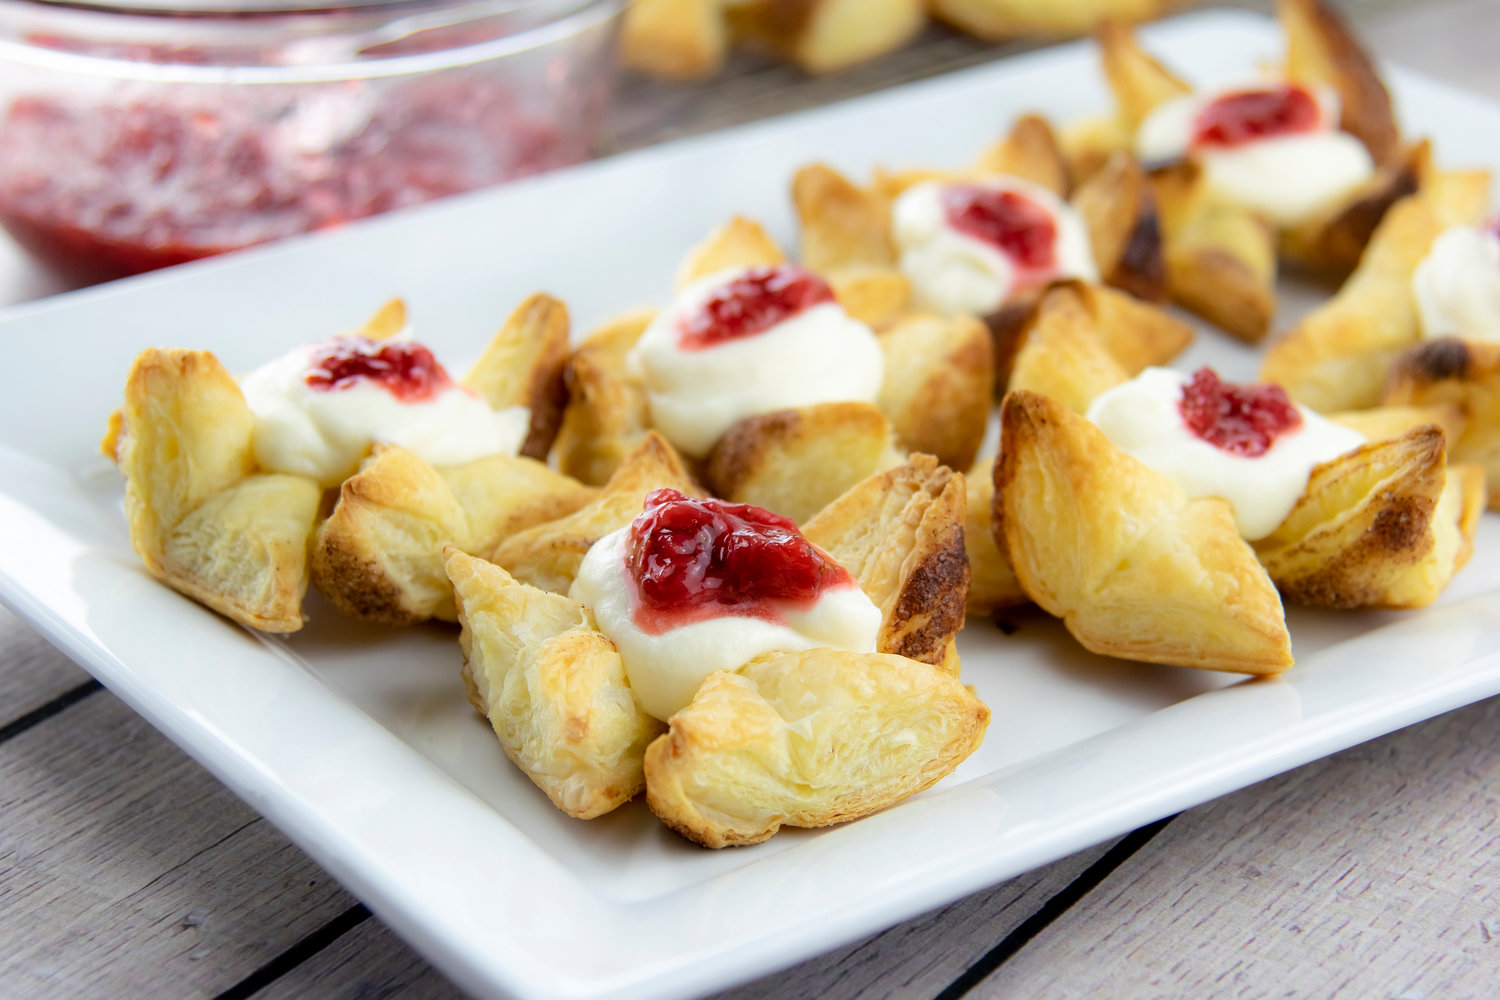 Perfect for a party or simply indulging yourself, these addictive pastry puffs make it hard to stop at one.